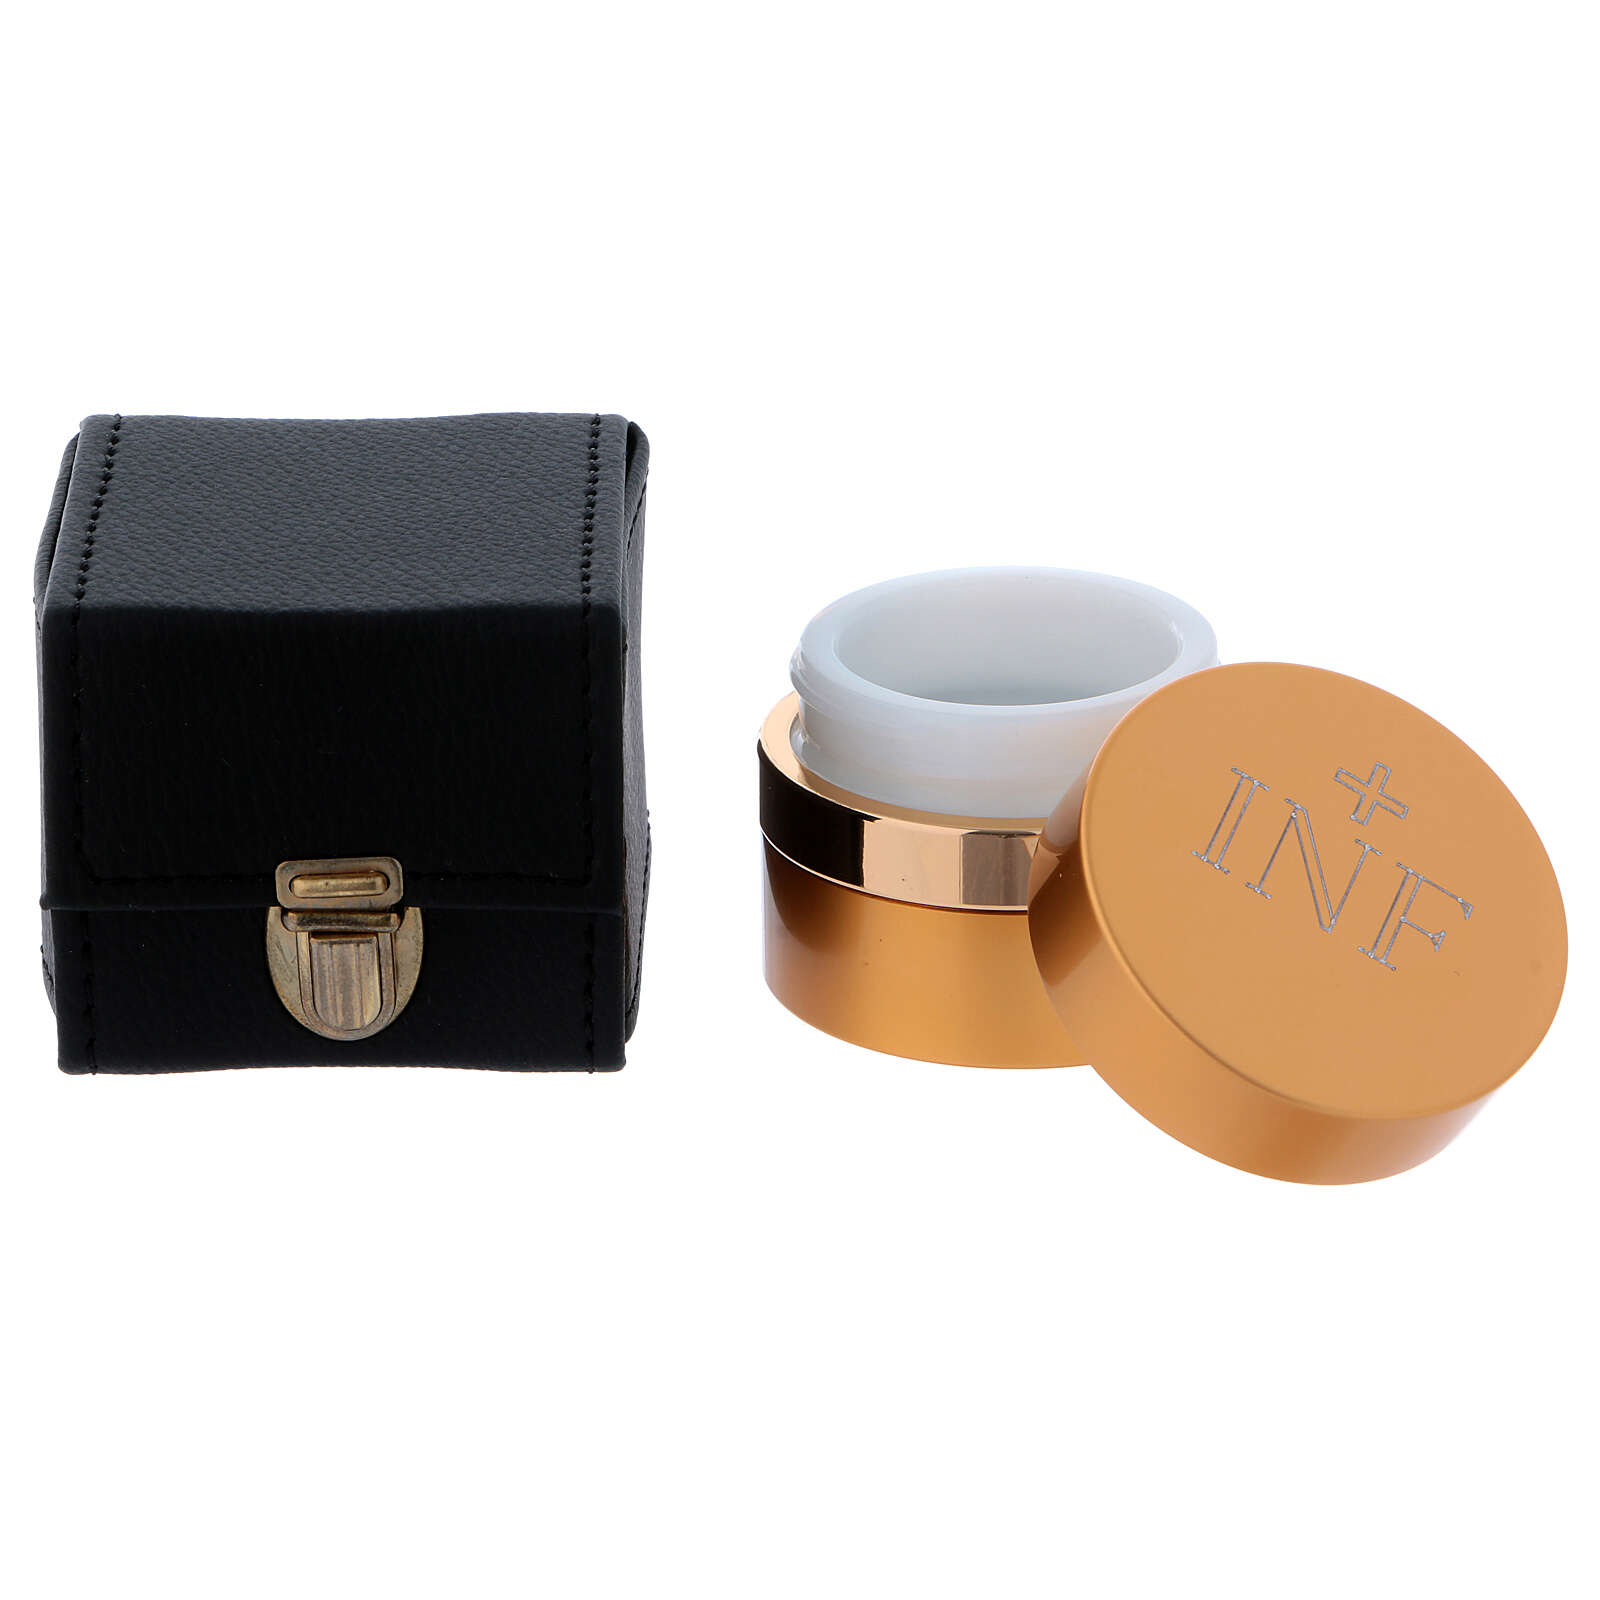 Cubic case with gold plated aluminium Holy oil stock 2 in diameter 3